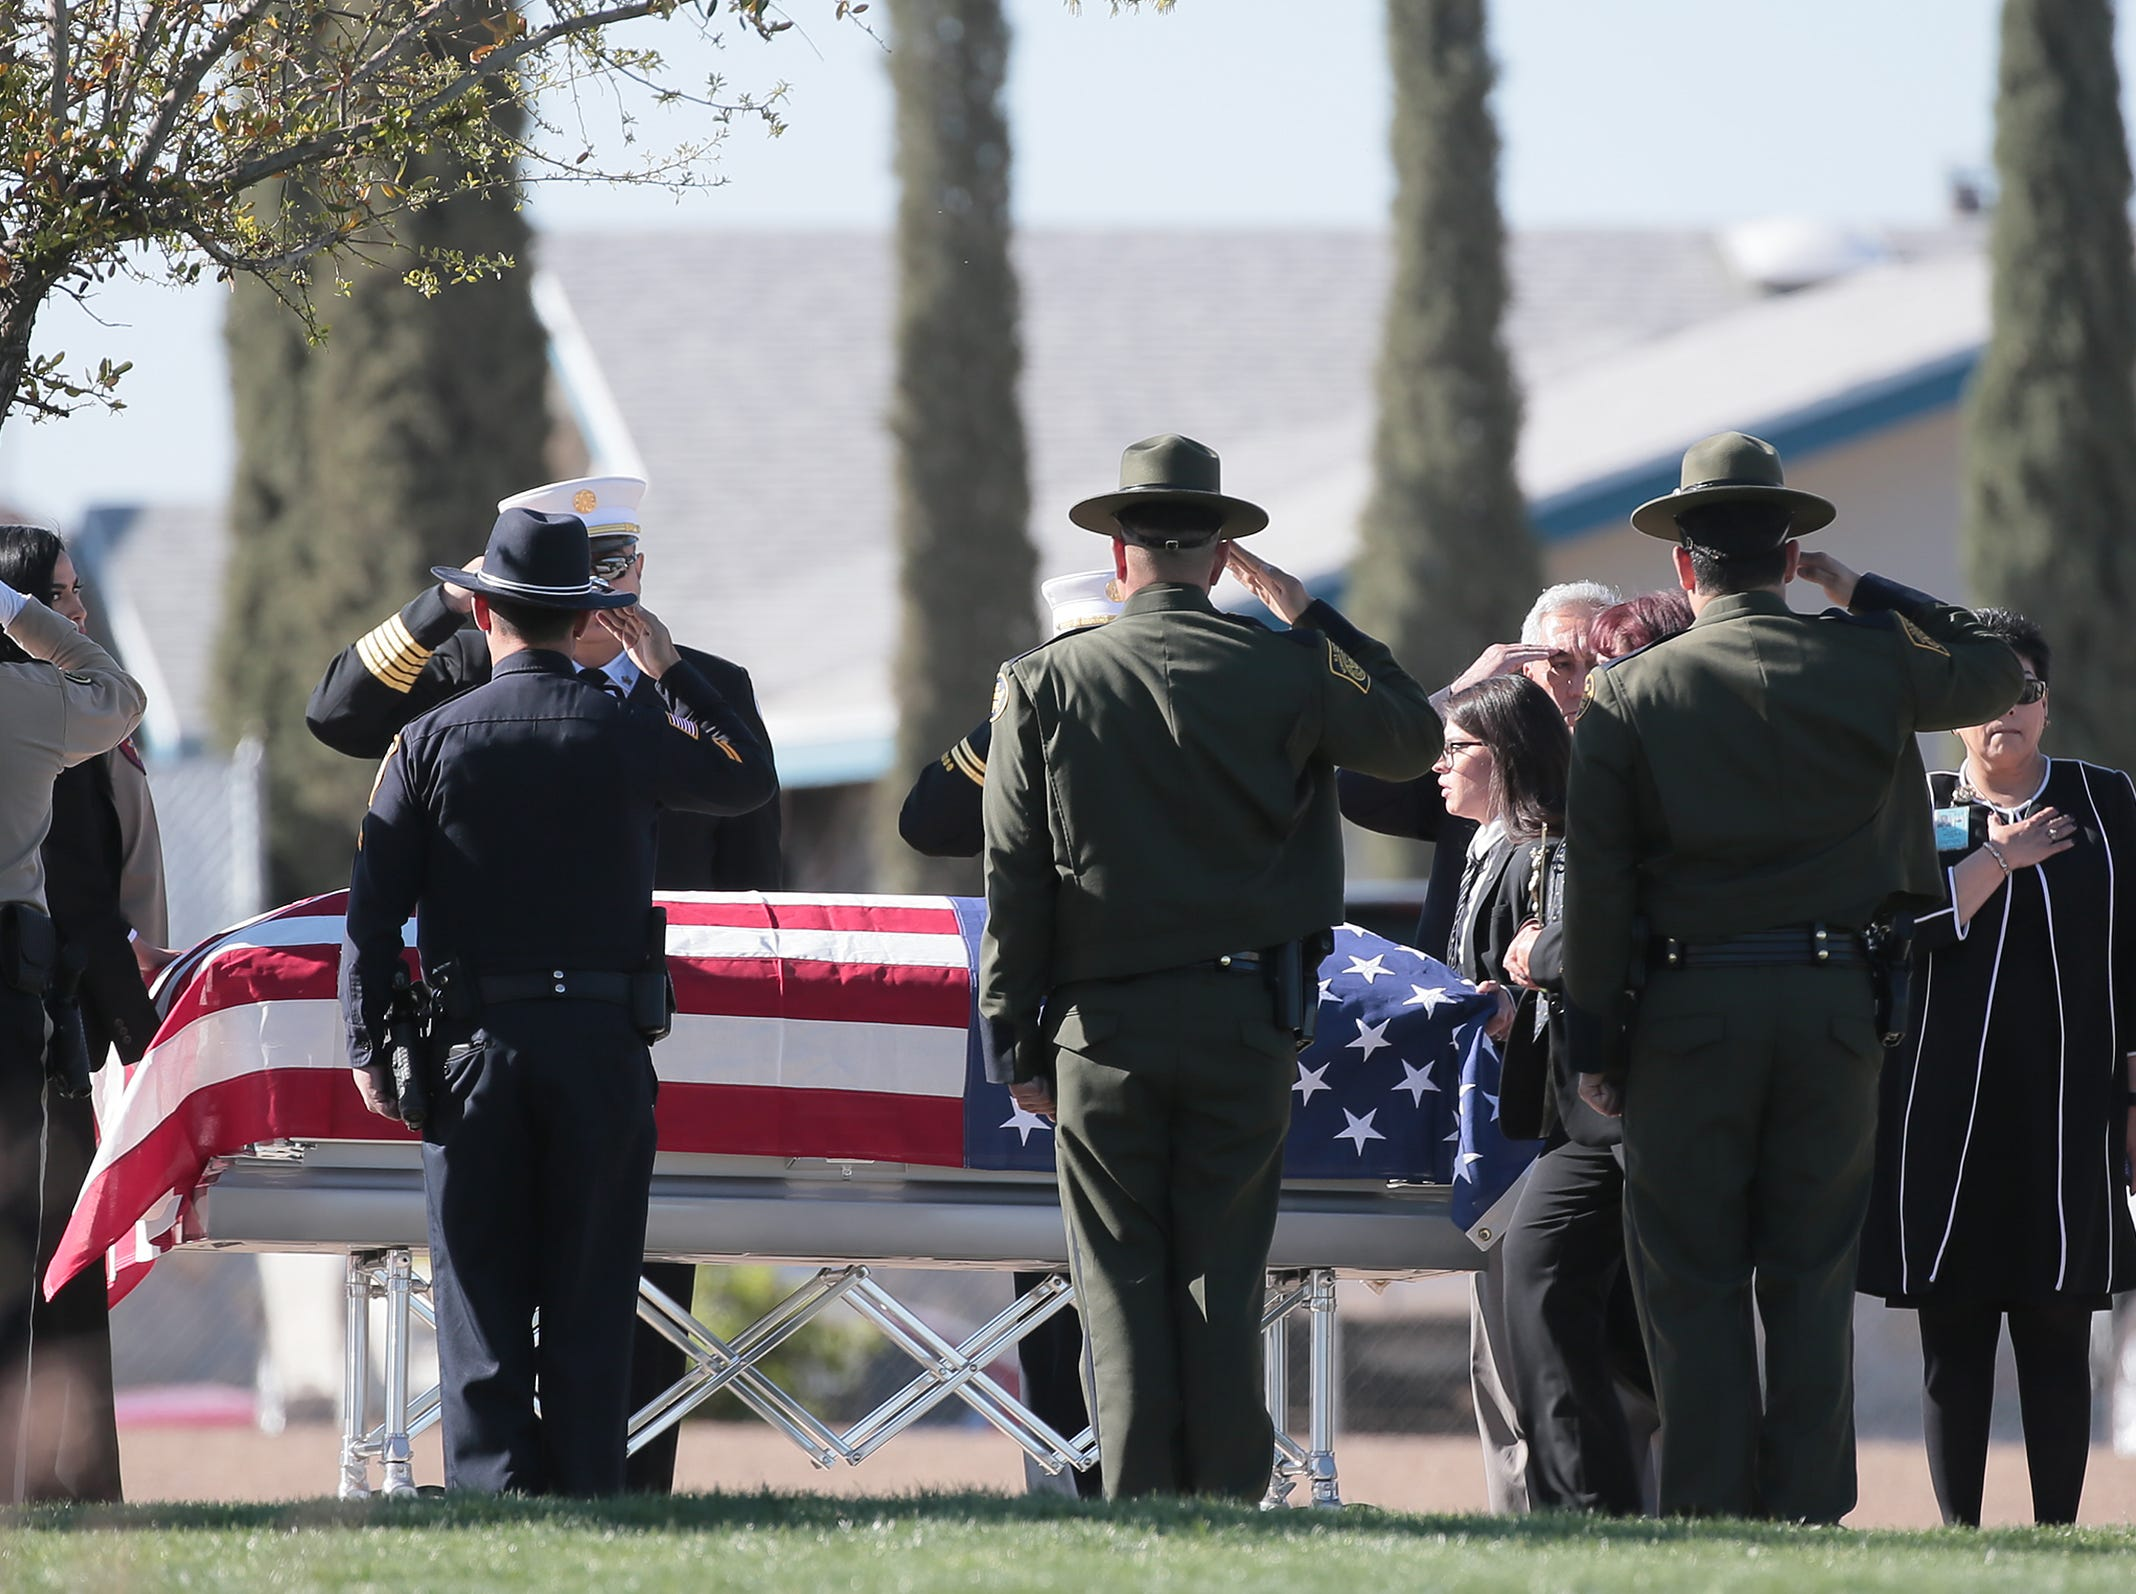 Funeral services were held Friday, March 29, 2019, for El Paso County Sheriff's Deputy Peter Herrera, who was fatally shot during a traffic stop.